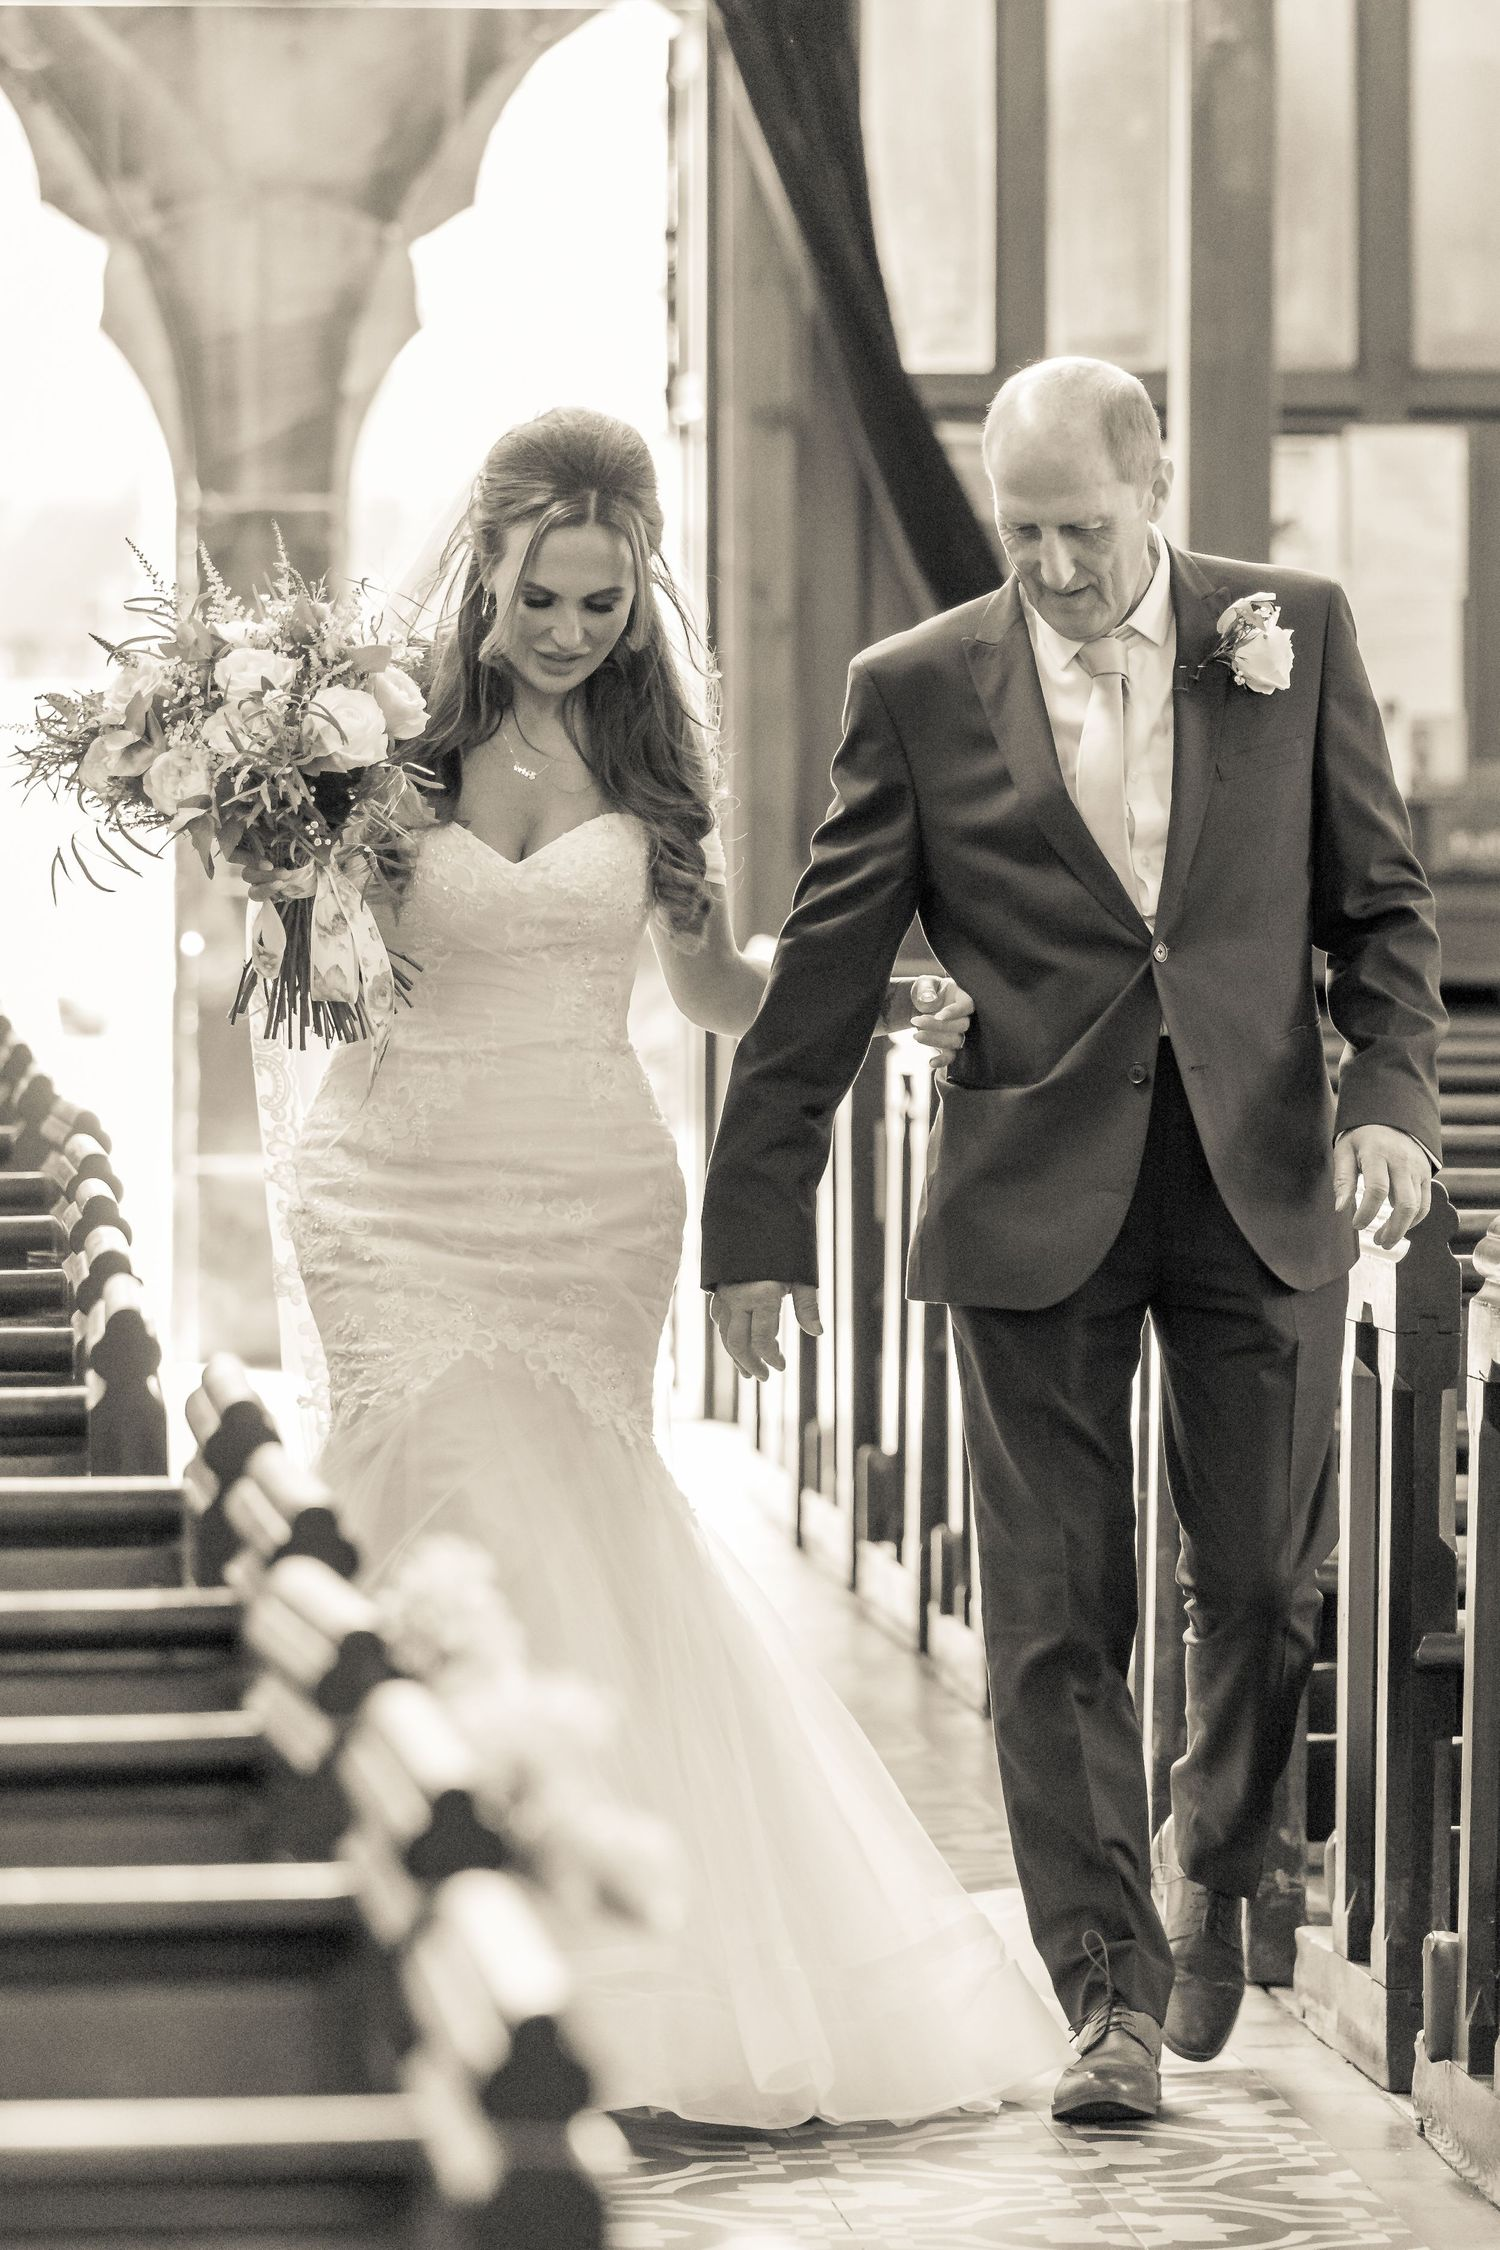 stunning bride carrying her bouquet escorted down the aisle by her father